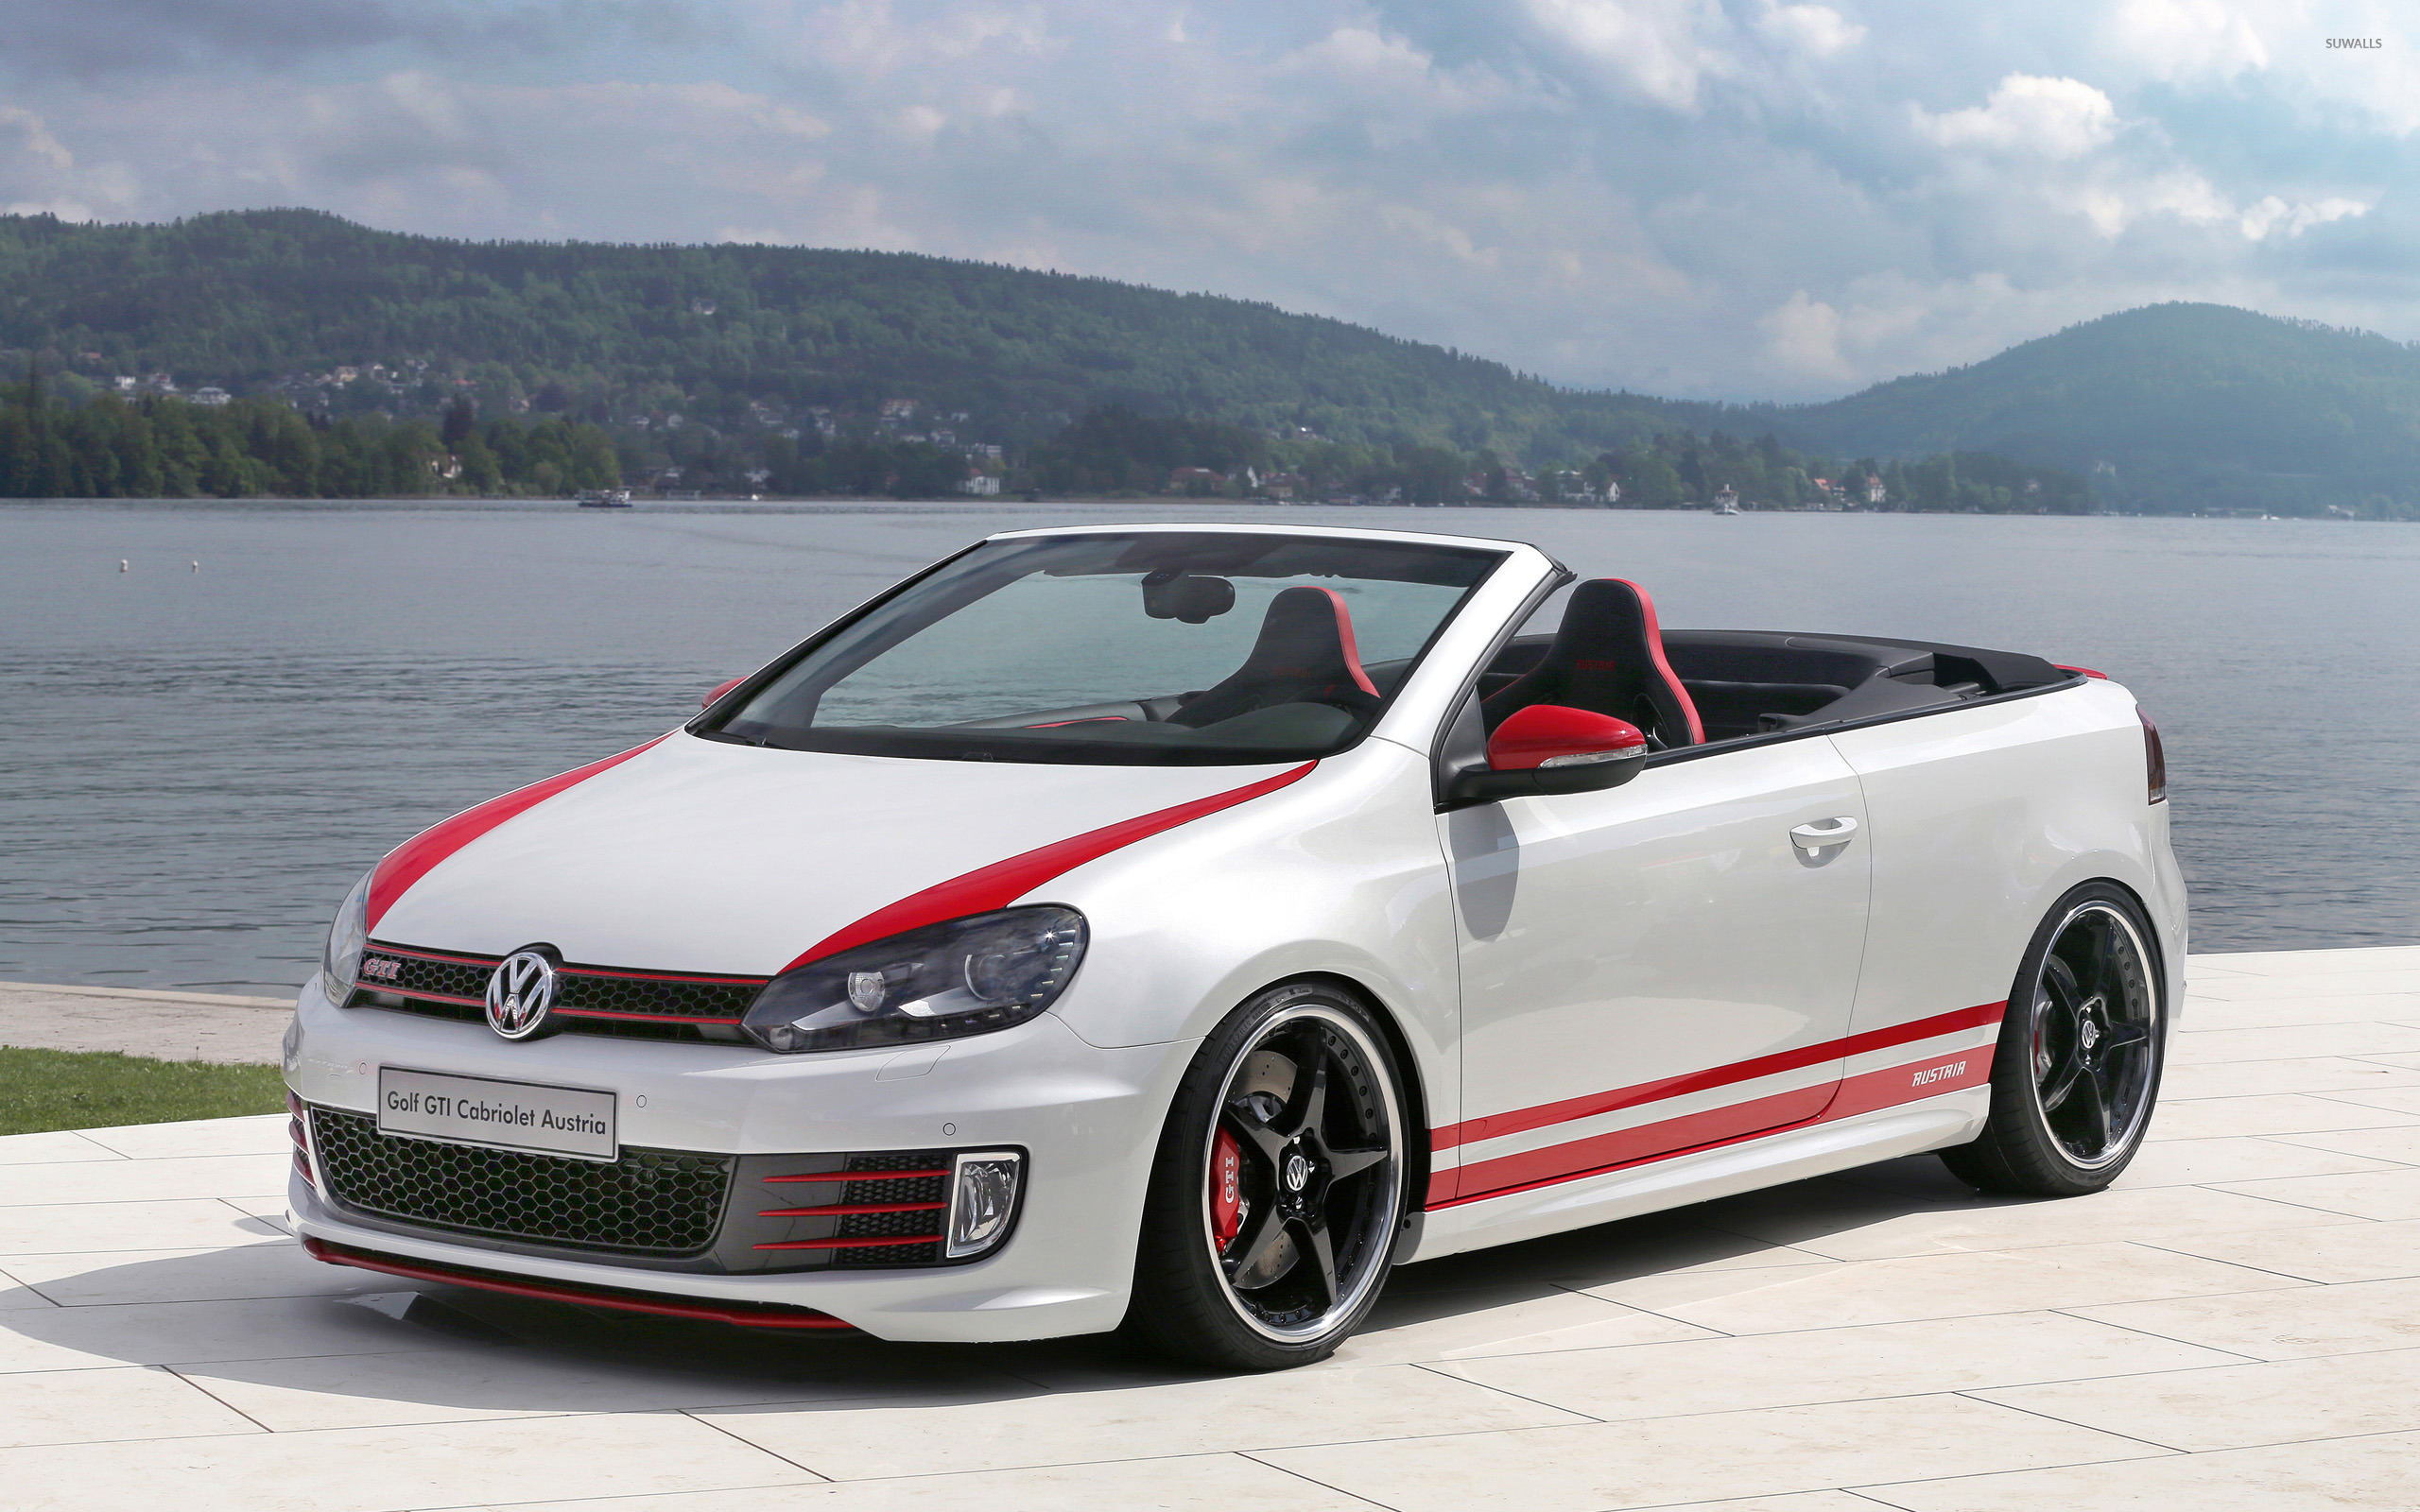 2013 Volkswagen Golf GTI Wallpaper